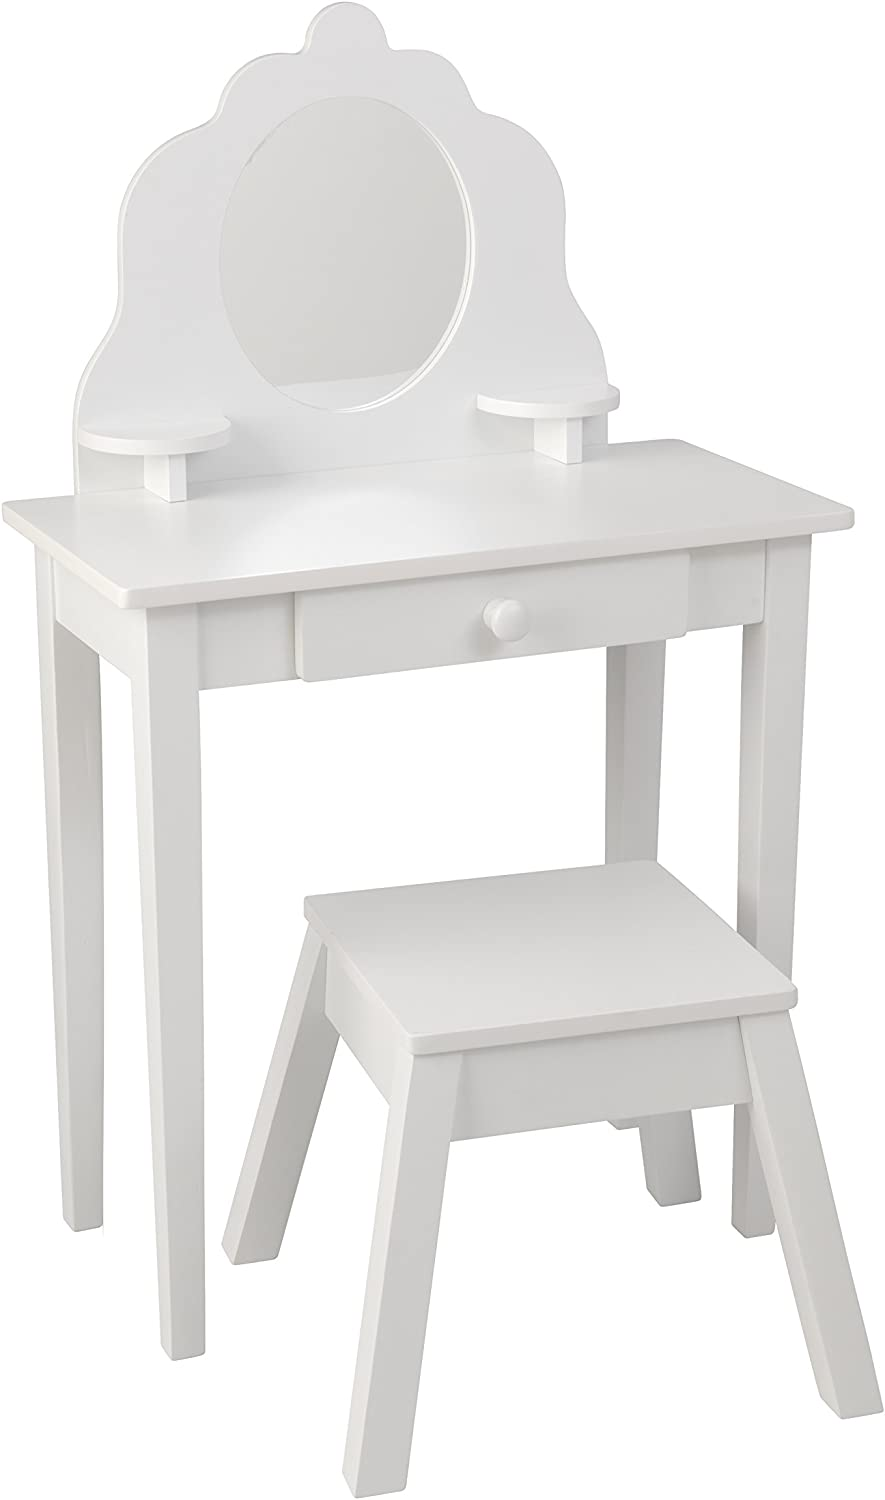 KidKraft Medium Wooden Vanity & Stool - White, Children's Furniture, Kid's Bedroom Storage